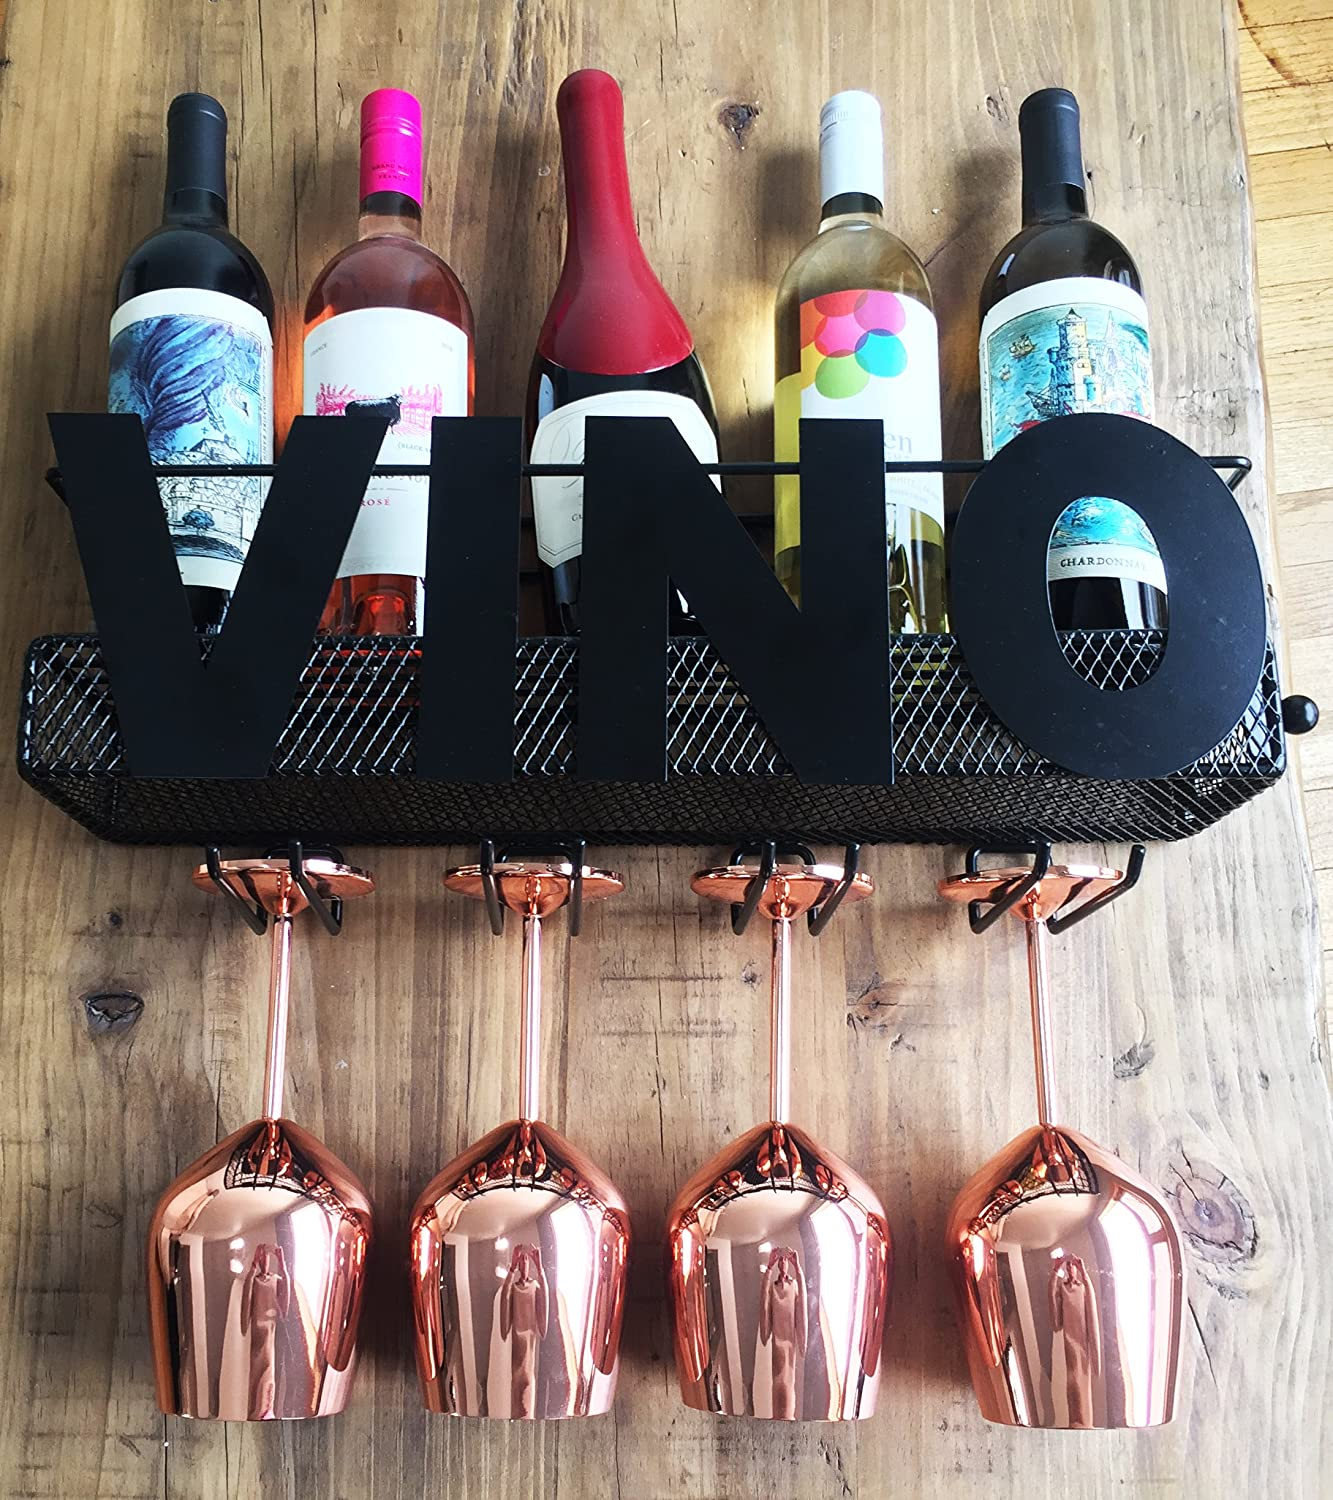 Cellar Door Selections VINO Metal Wall Mount Wine Rack - Holds 5 Wine Bottles, 4 Wine Glasses with Cork Storage – The Perfect Home Decor Gift for Wine Lovers – New Unique Design By Best Made Collections